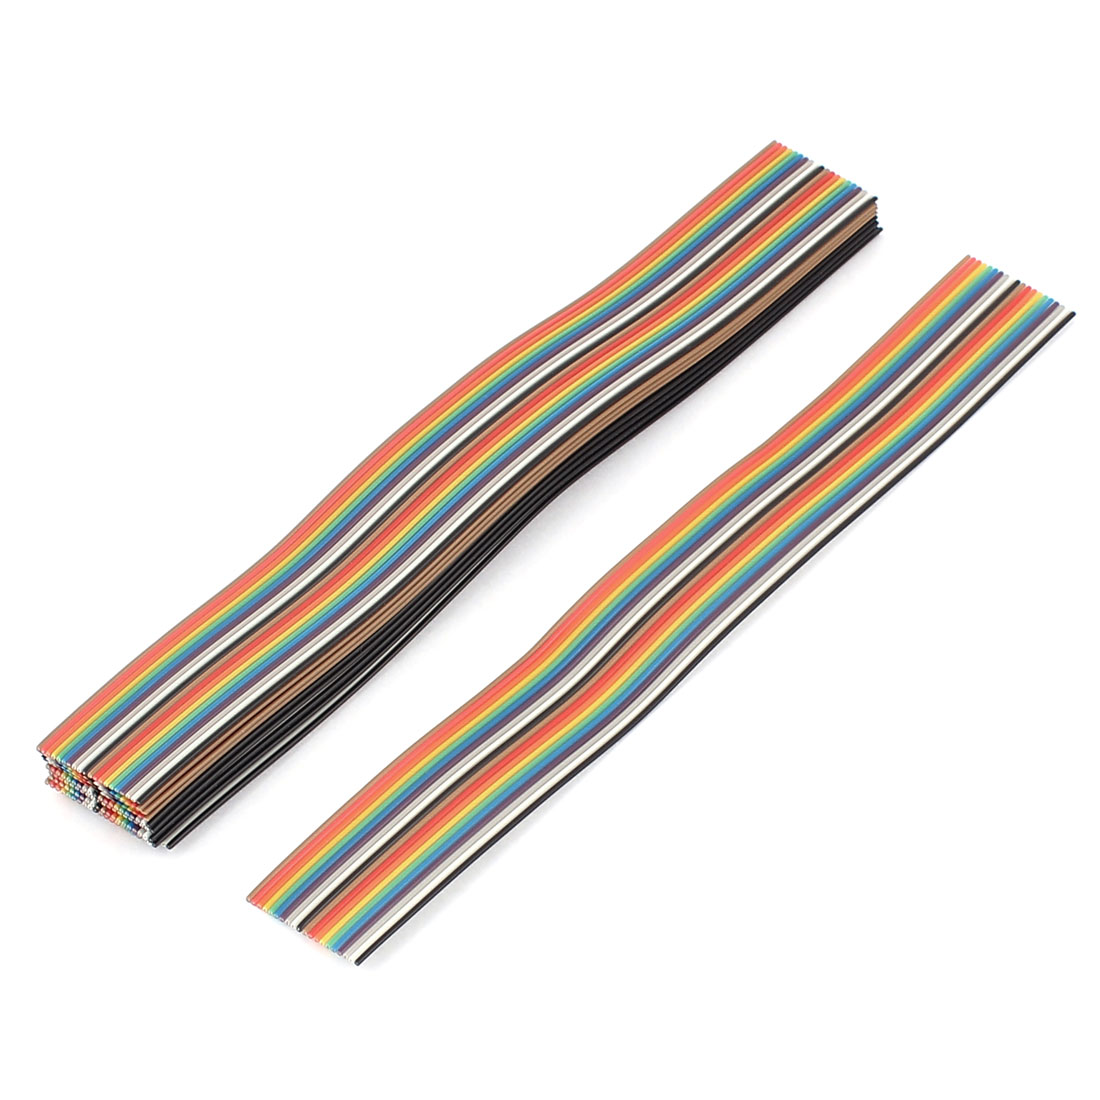 13 Pcs 200mm Long 20-Pin Rainbow Color Flat Ribbon Cable IDC Wire